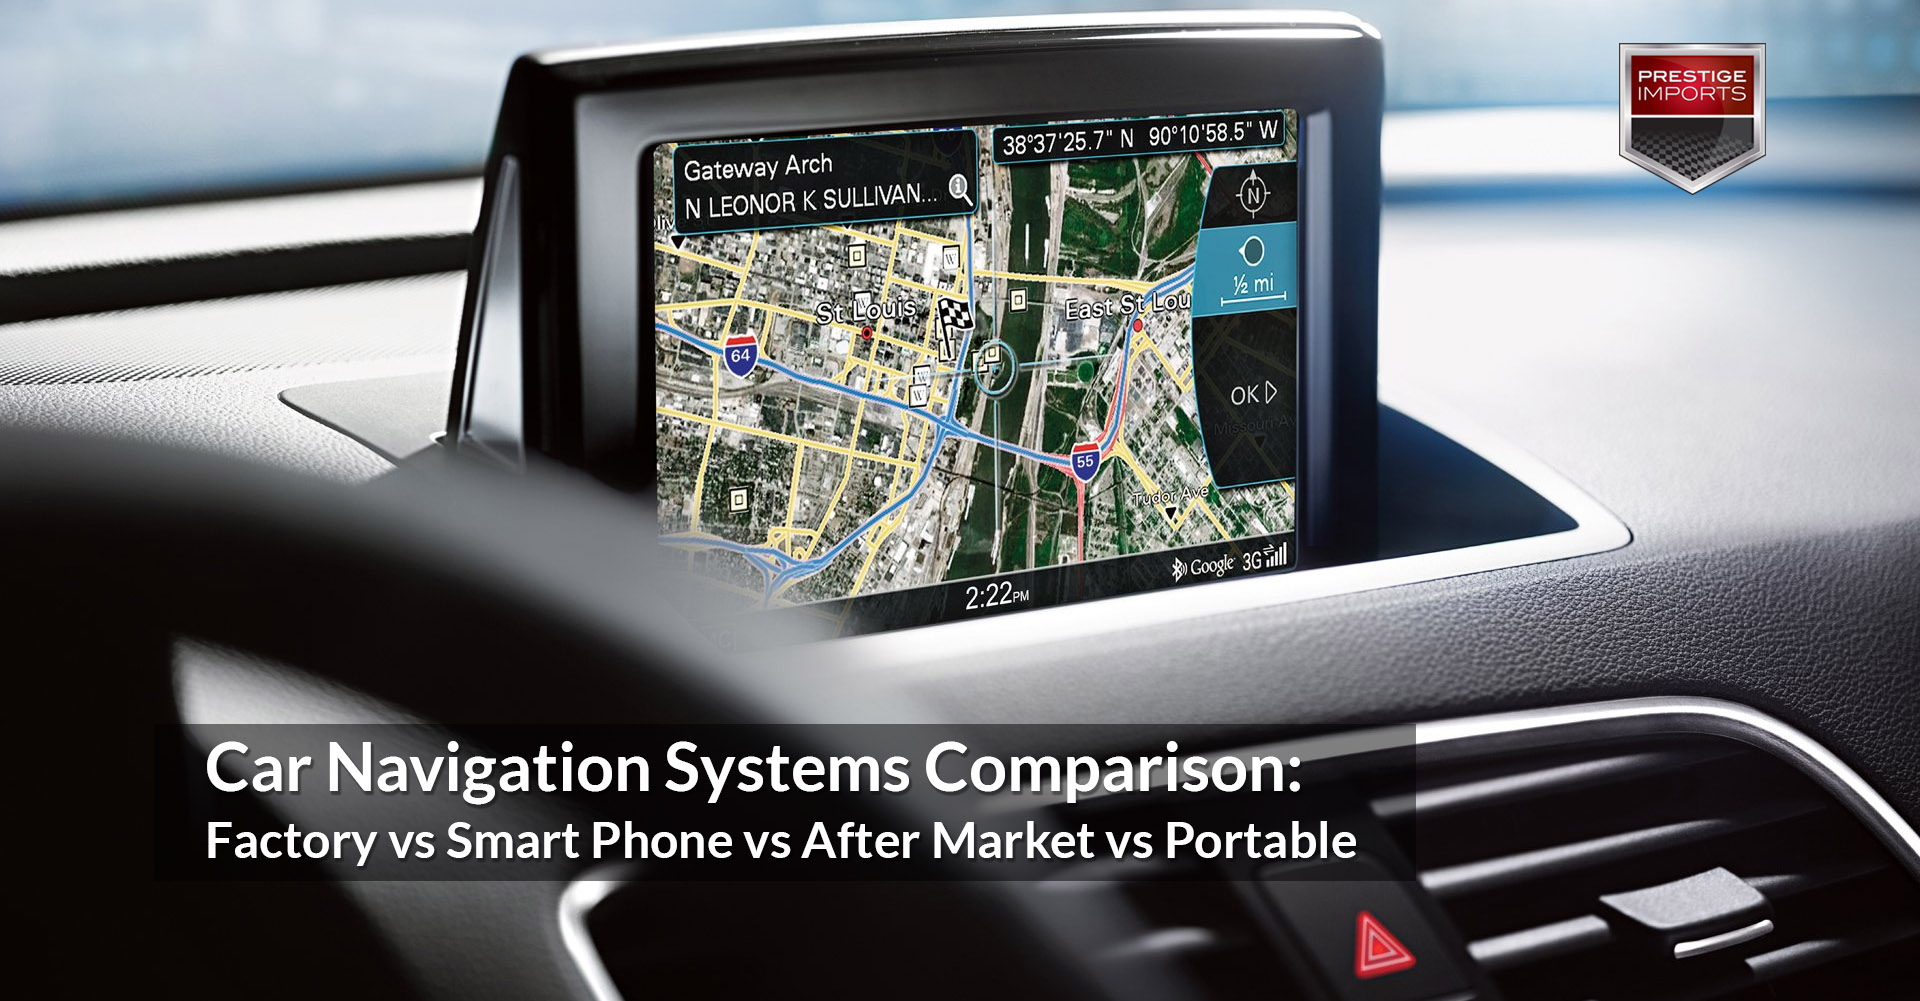 Car Navigation Systems Comparison Factory Smart Phone After